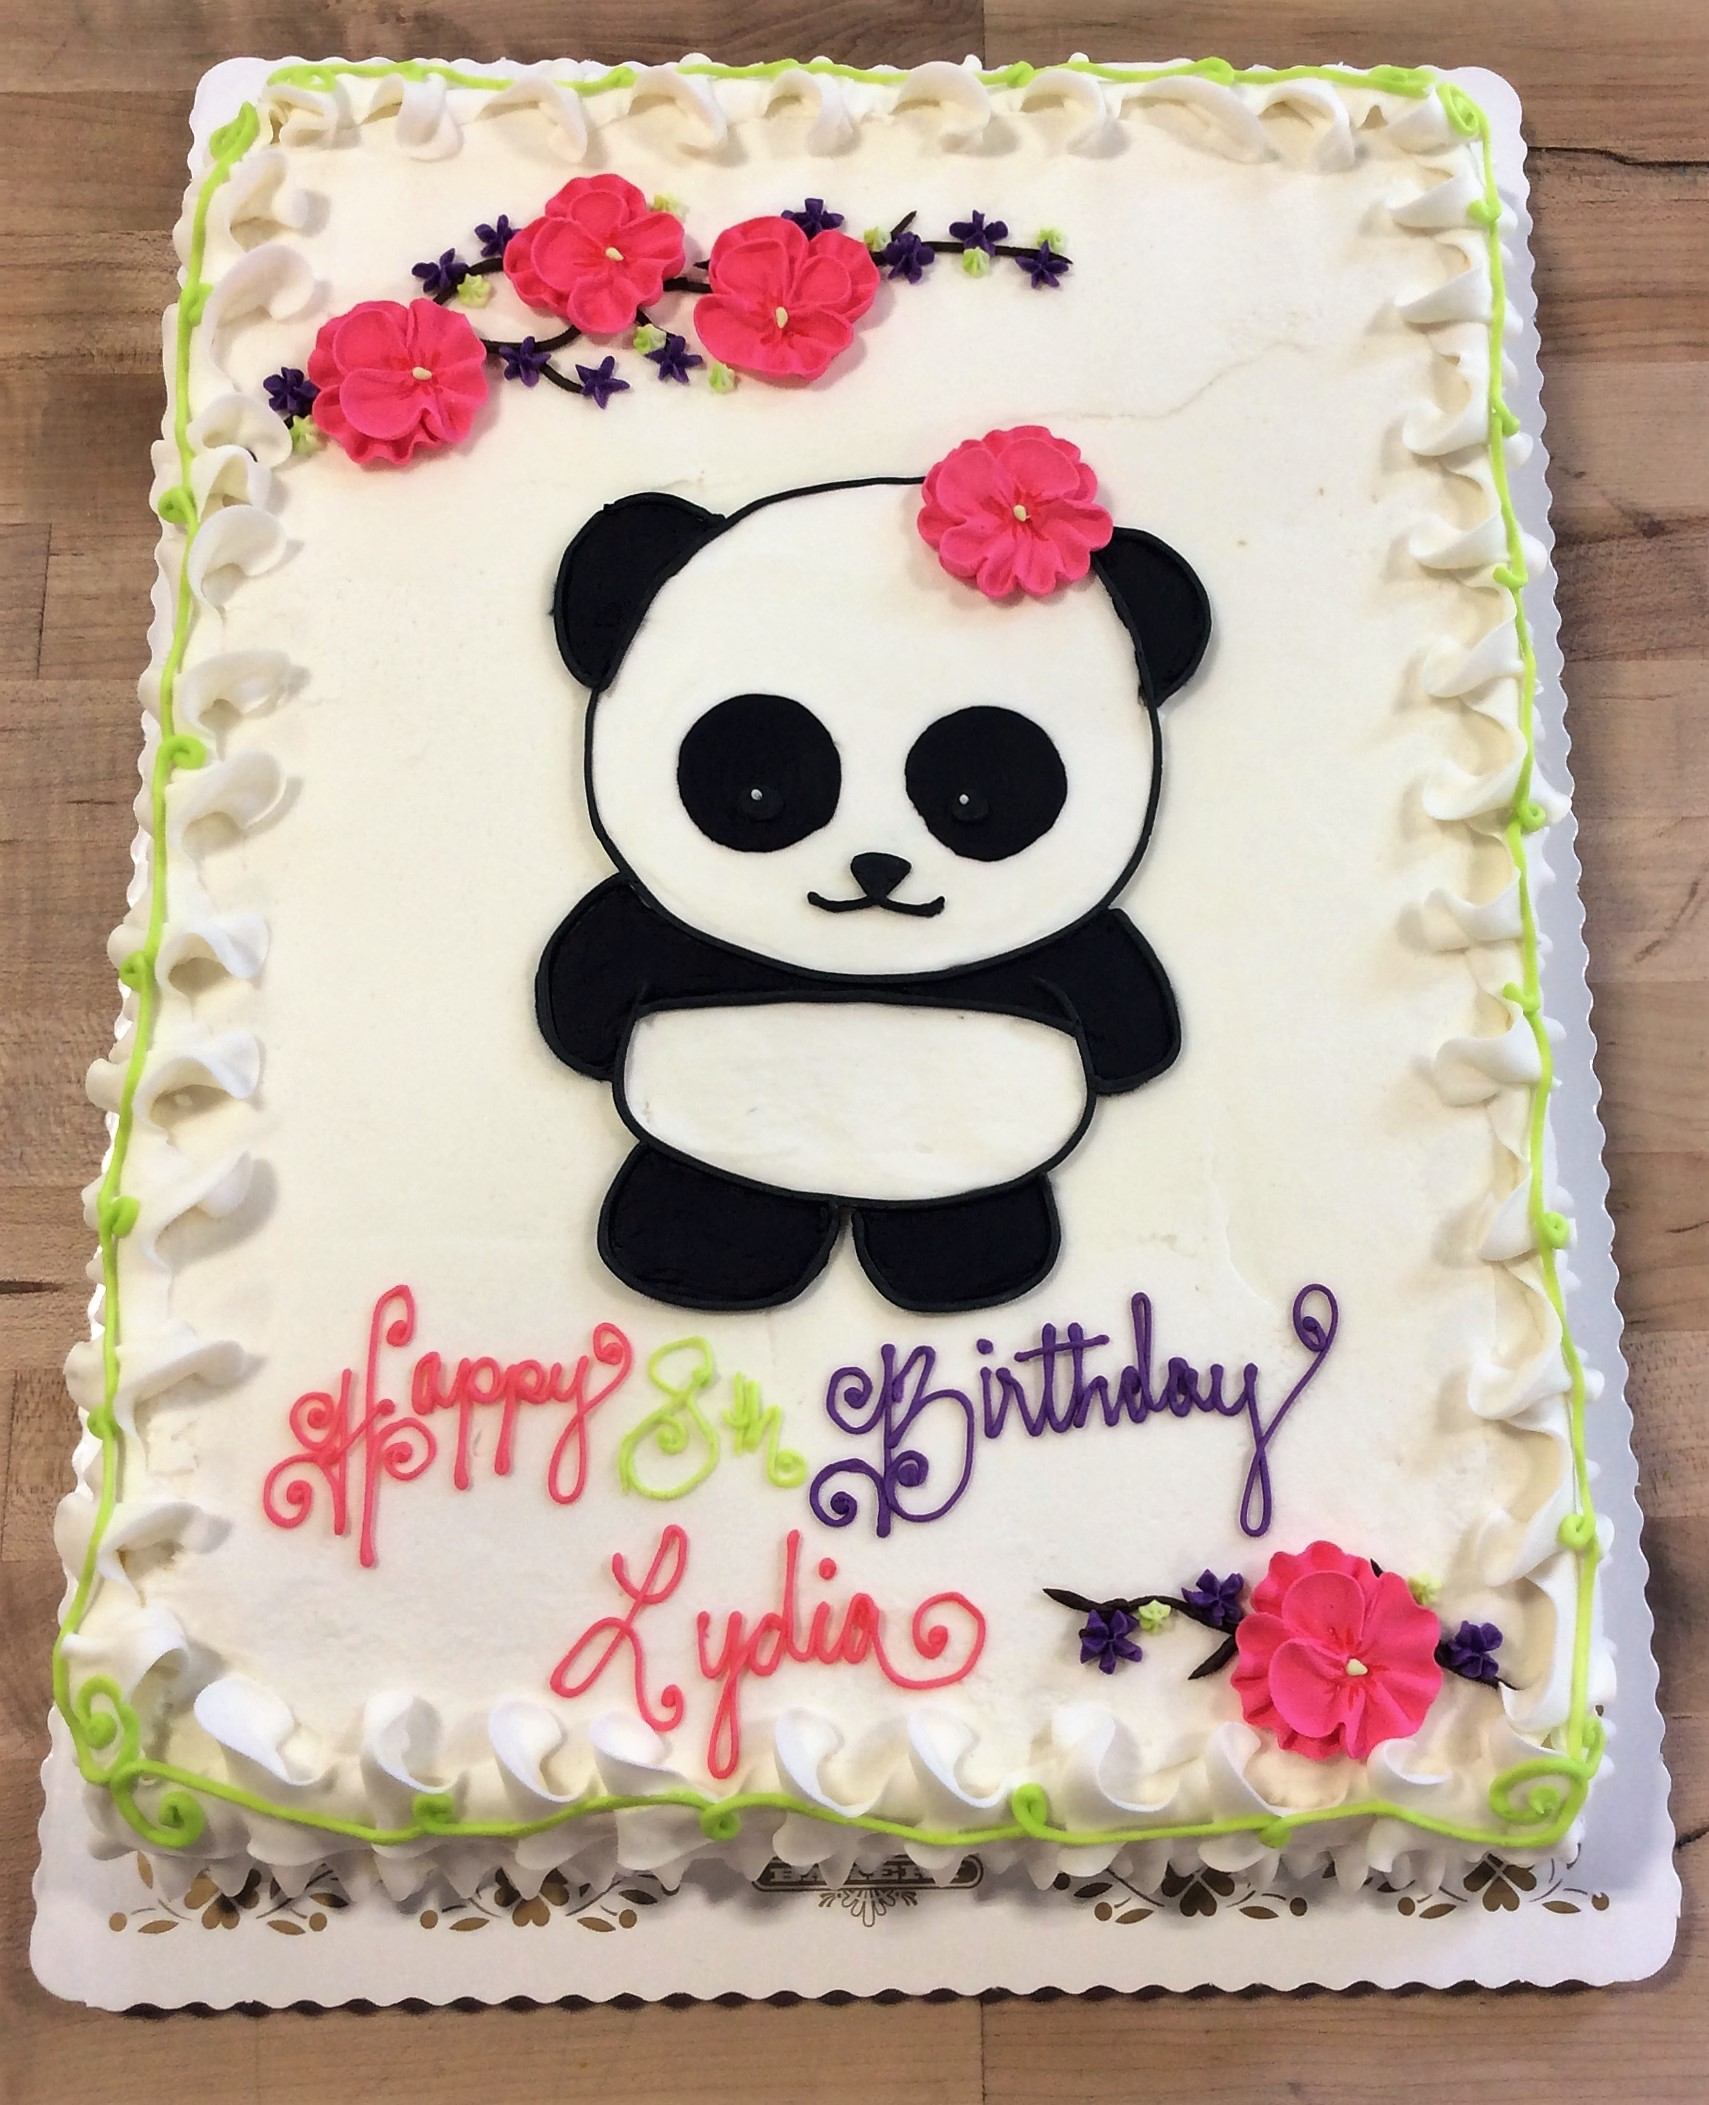 Sheet Cake with Piped Panda Decoration